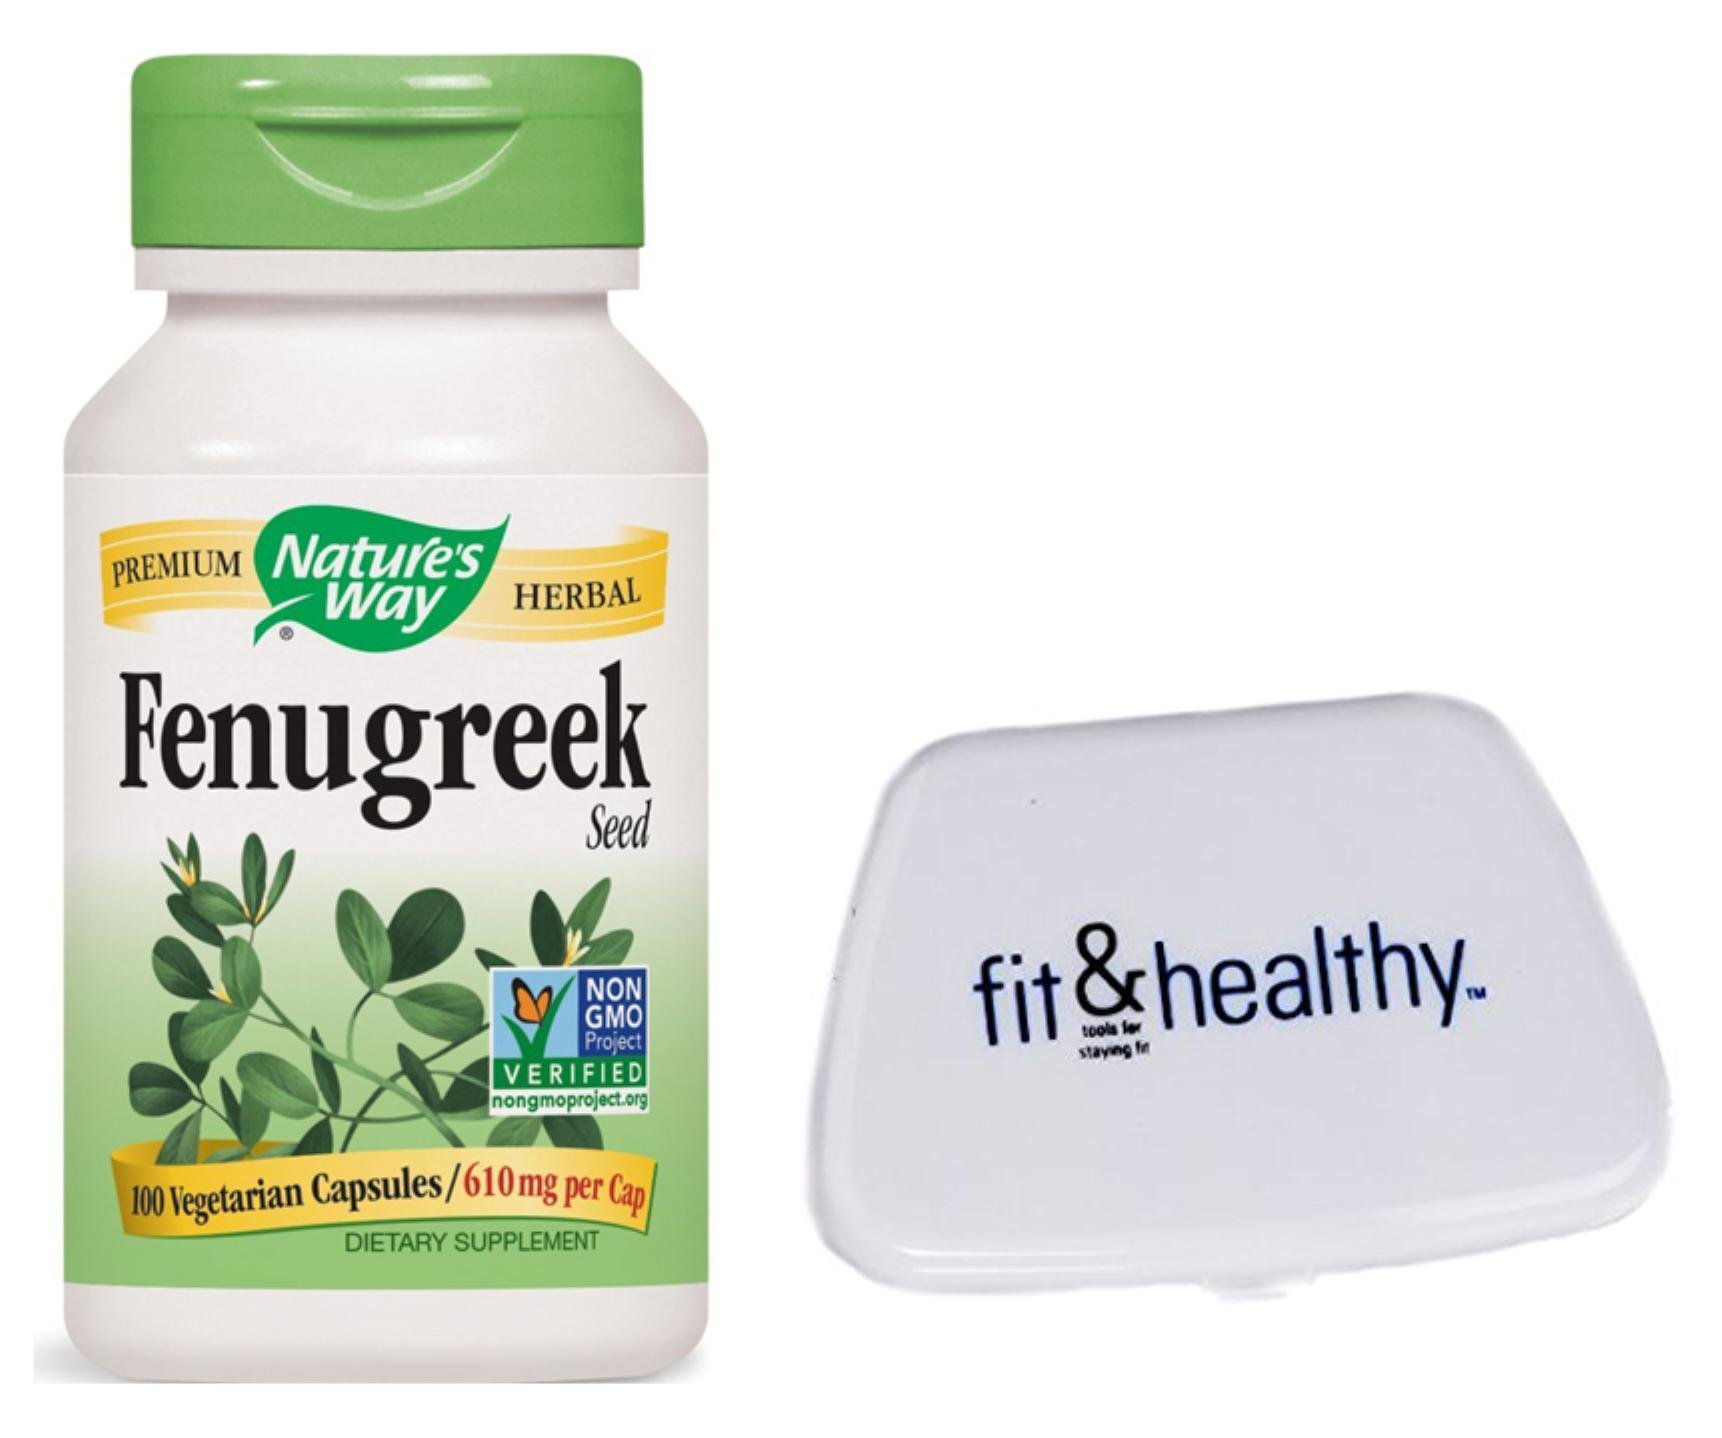 Nature's Way Fenugreek Seed 100 Vegetarian Capsules in Bundle with Fit & Healthy Pocket Pill Pack by Nature's Way and Fit & Healthy (Image #1)